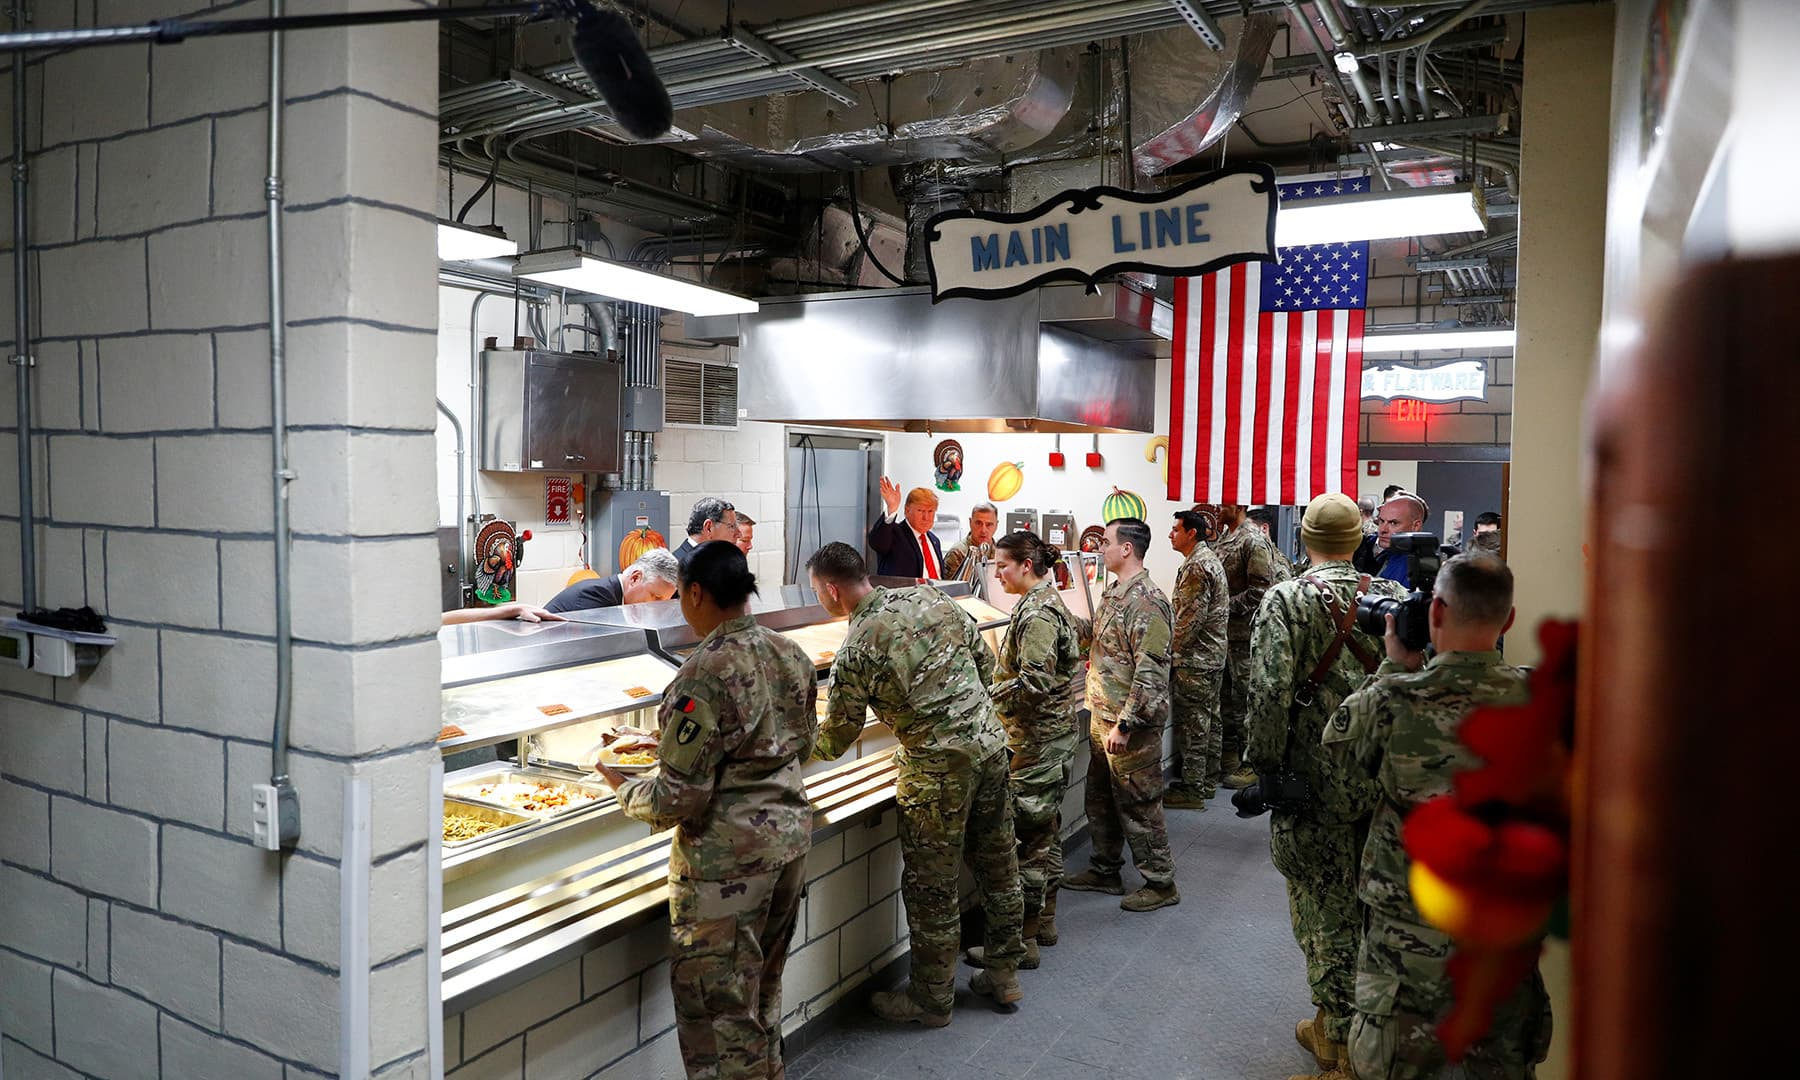 US President Donald Trump serves US troops food at a Thanksgiving dinner event during a surprise visit at Bagram Air Base in Afghanistan on November 28. — Reuters